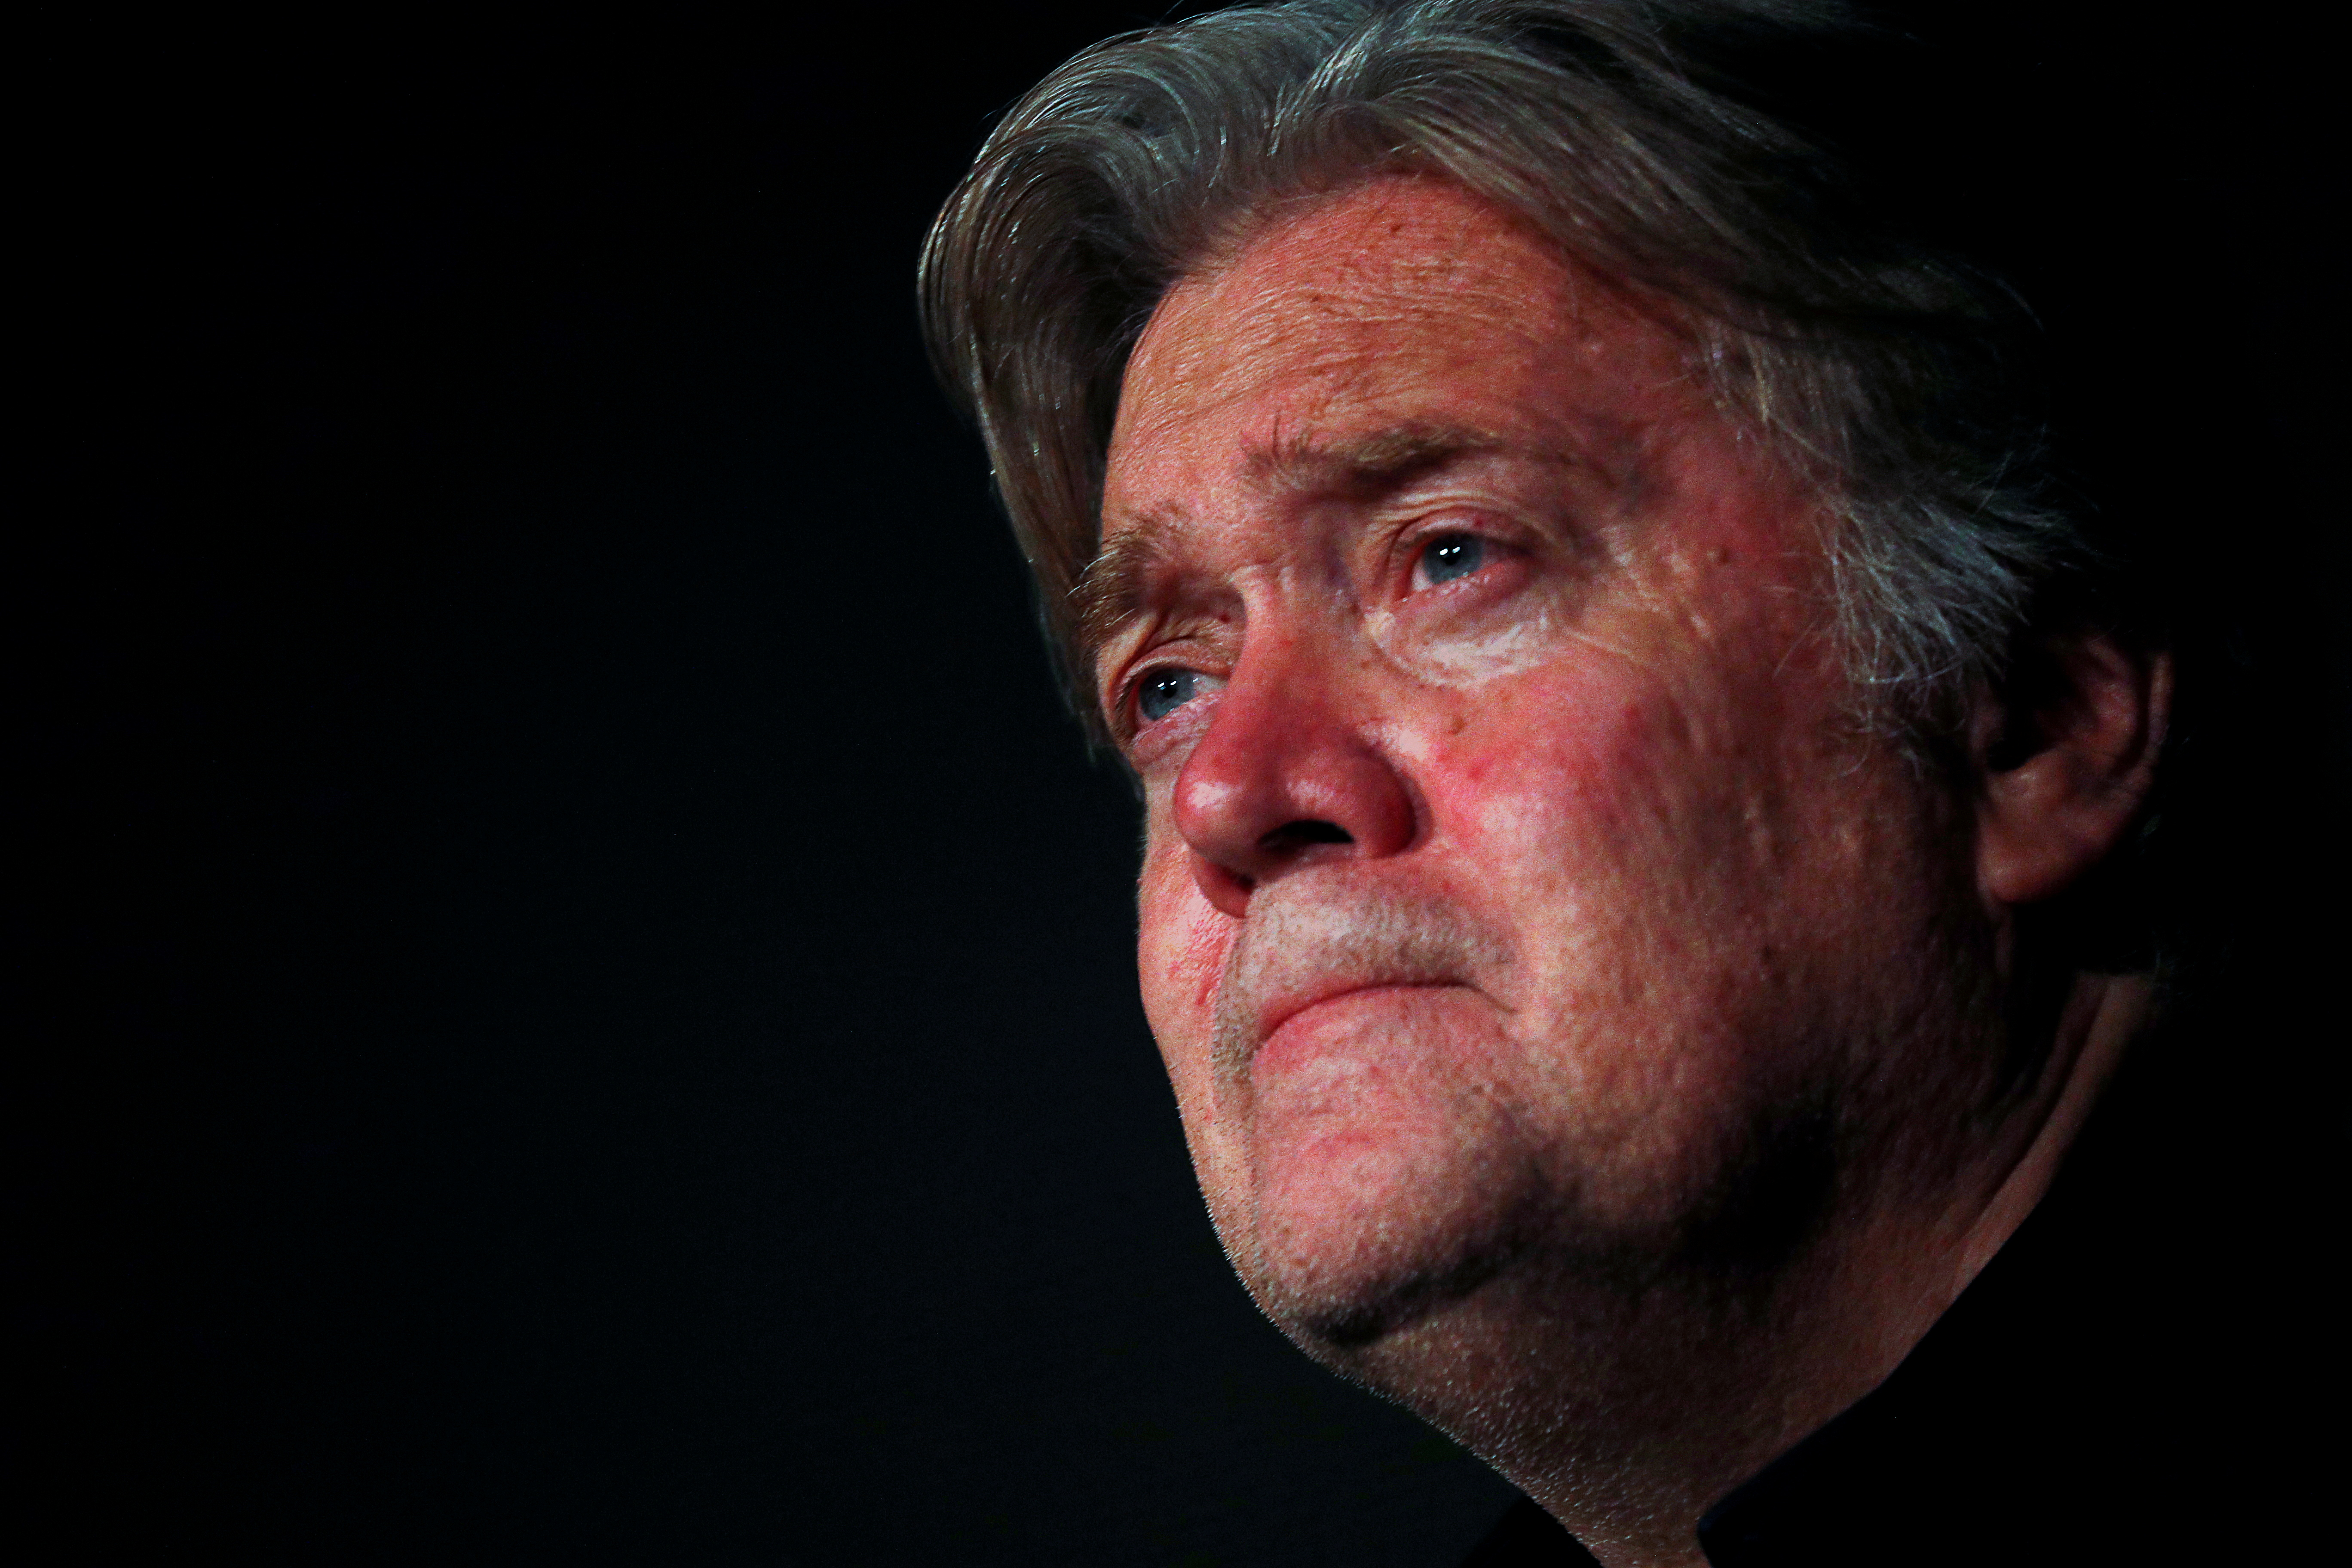 Former White House Chief Strategist Steve Bannon holds a news conference in Rome, Italy September 22, 2018. REUTERS/Alessandro Bianchi/File Photo